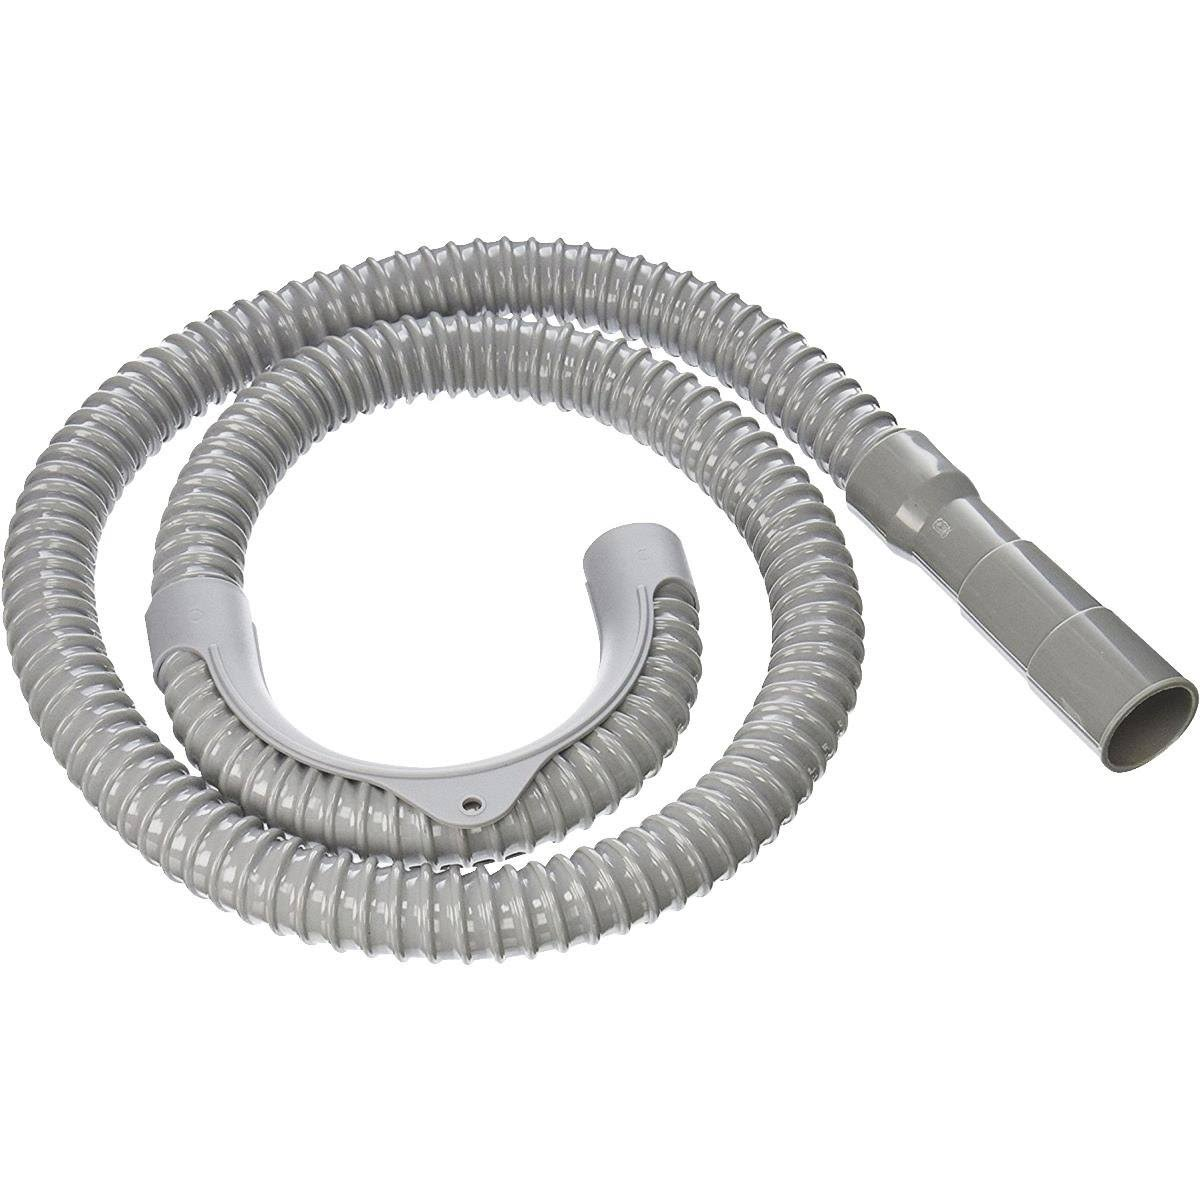 William H. Harvey 441910 Washing Machine Drain Hose